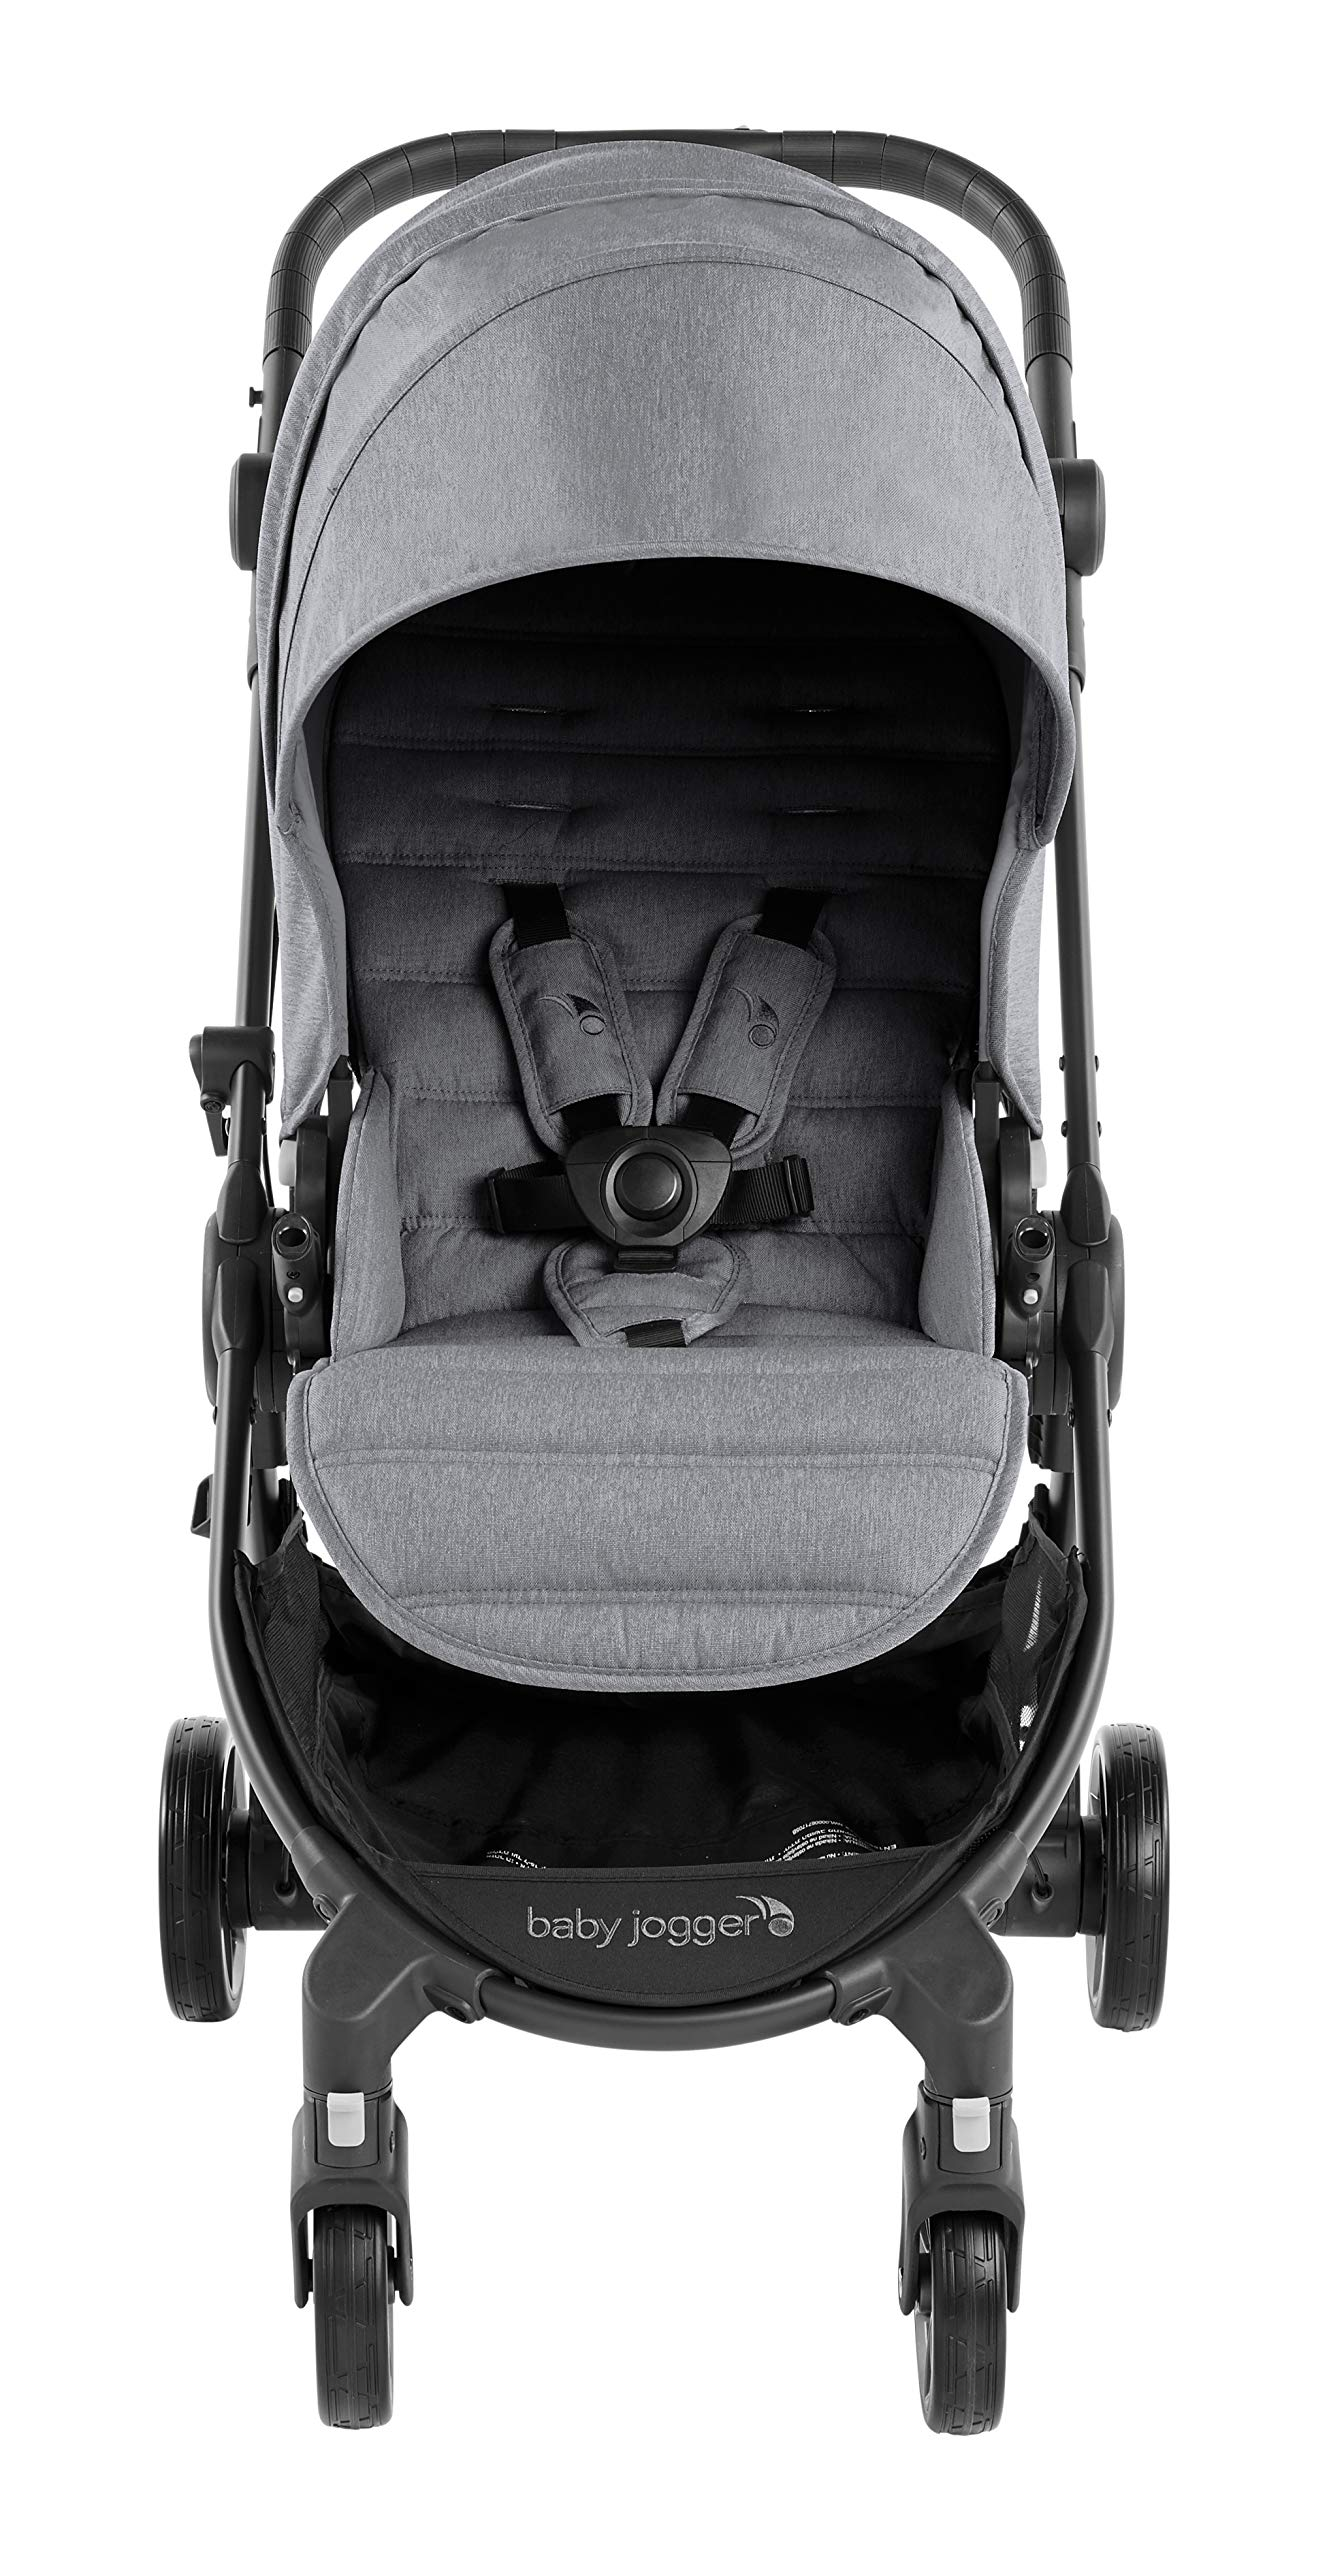 Baby Jogger City Tour LUX Compact Fold Reversible Stroller, Slate Baby Jogger The city tour lux and has a reversible from-birth seat unit for rear or forward travel Features an ultra-compact one hand fold and auto-lock when folded, allowing you to fold and go quickly. includes a carry bag and integrated carry strap a for easy transport With a flip flop friendly hand brake, lightweight and durable pu tyres and all wheel suspension to help keep mum and baby comfortable on many terrains 2